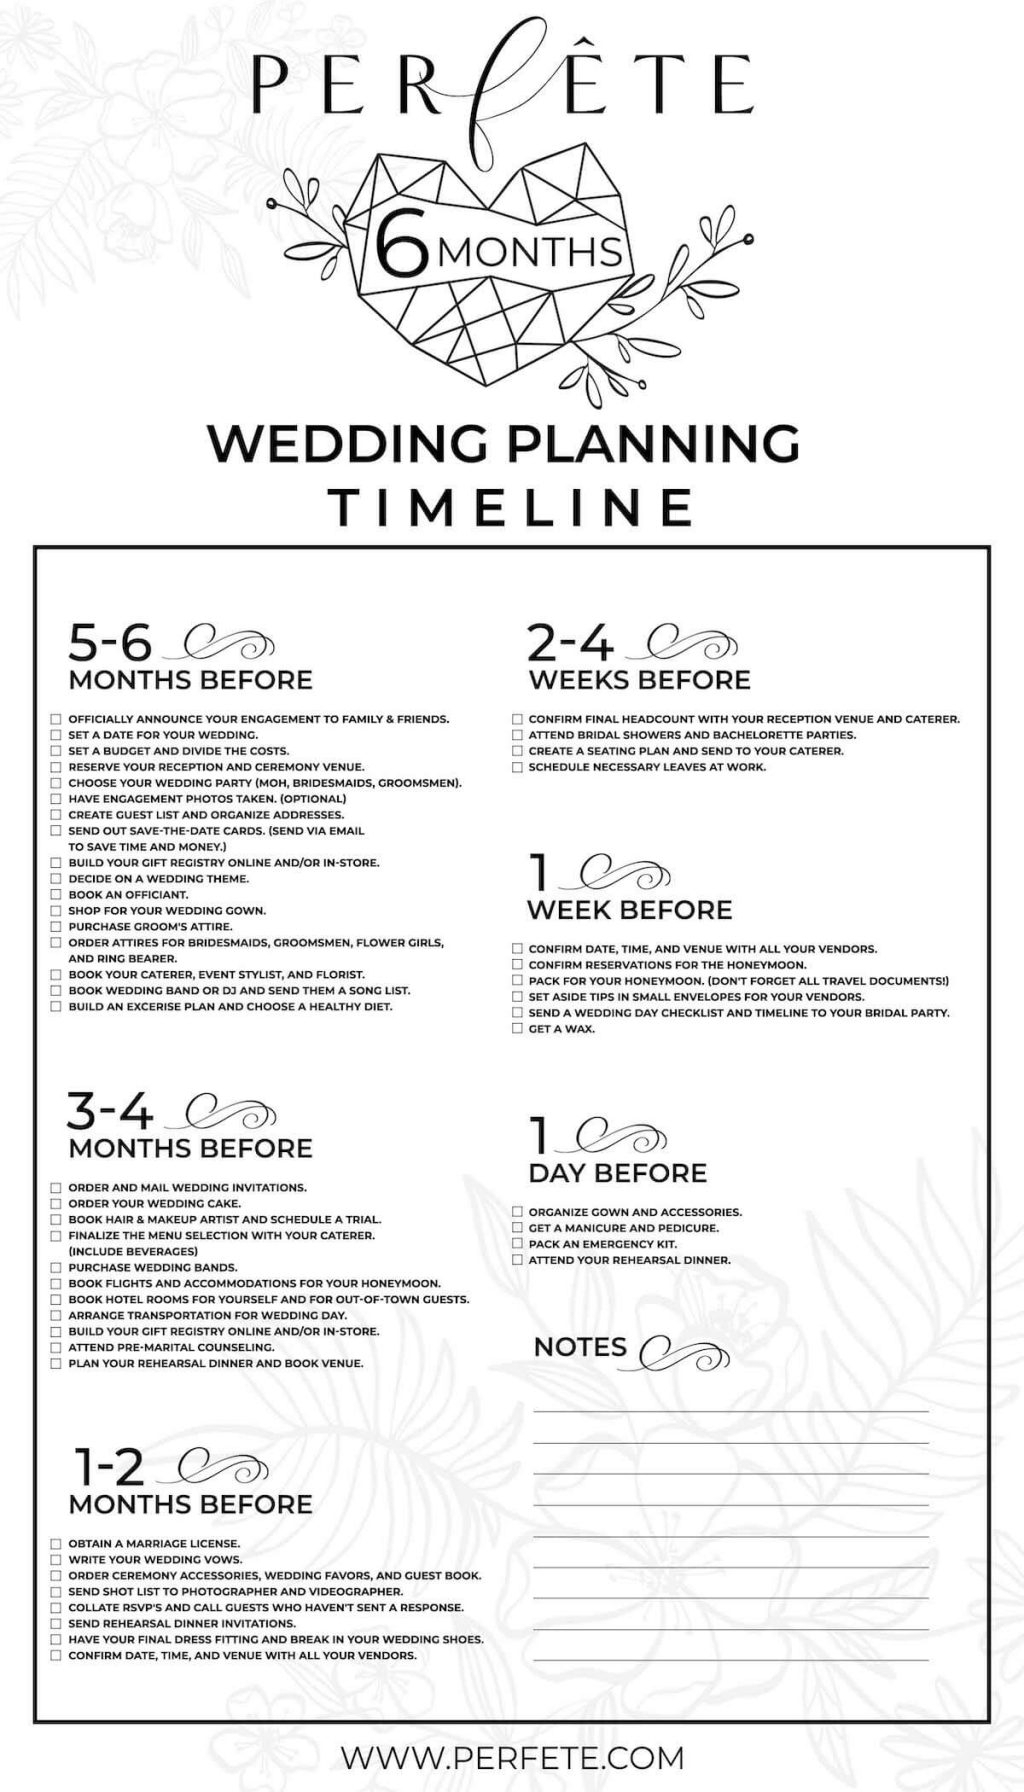 Wedding Planning Checklist Portgambleweddings Printable Uk